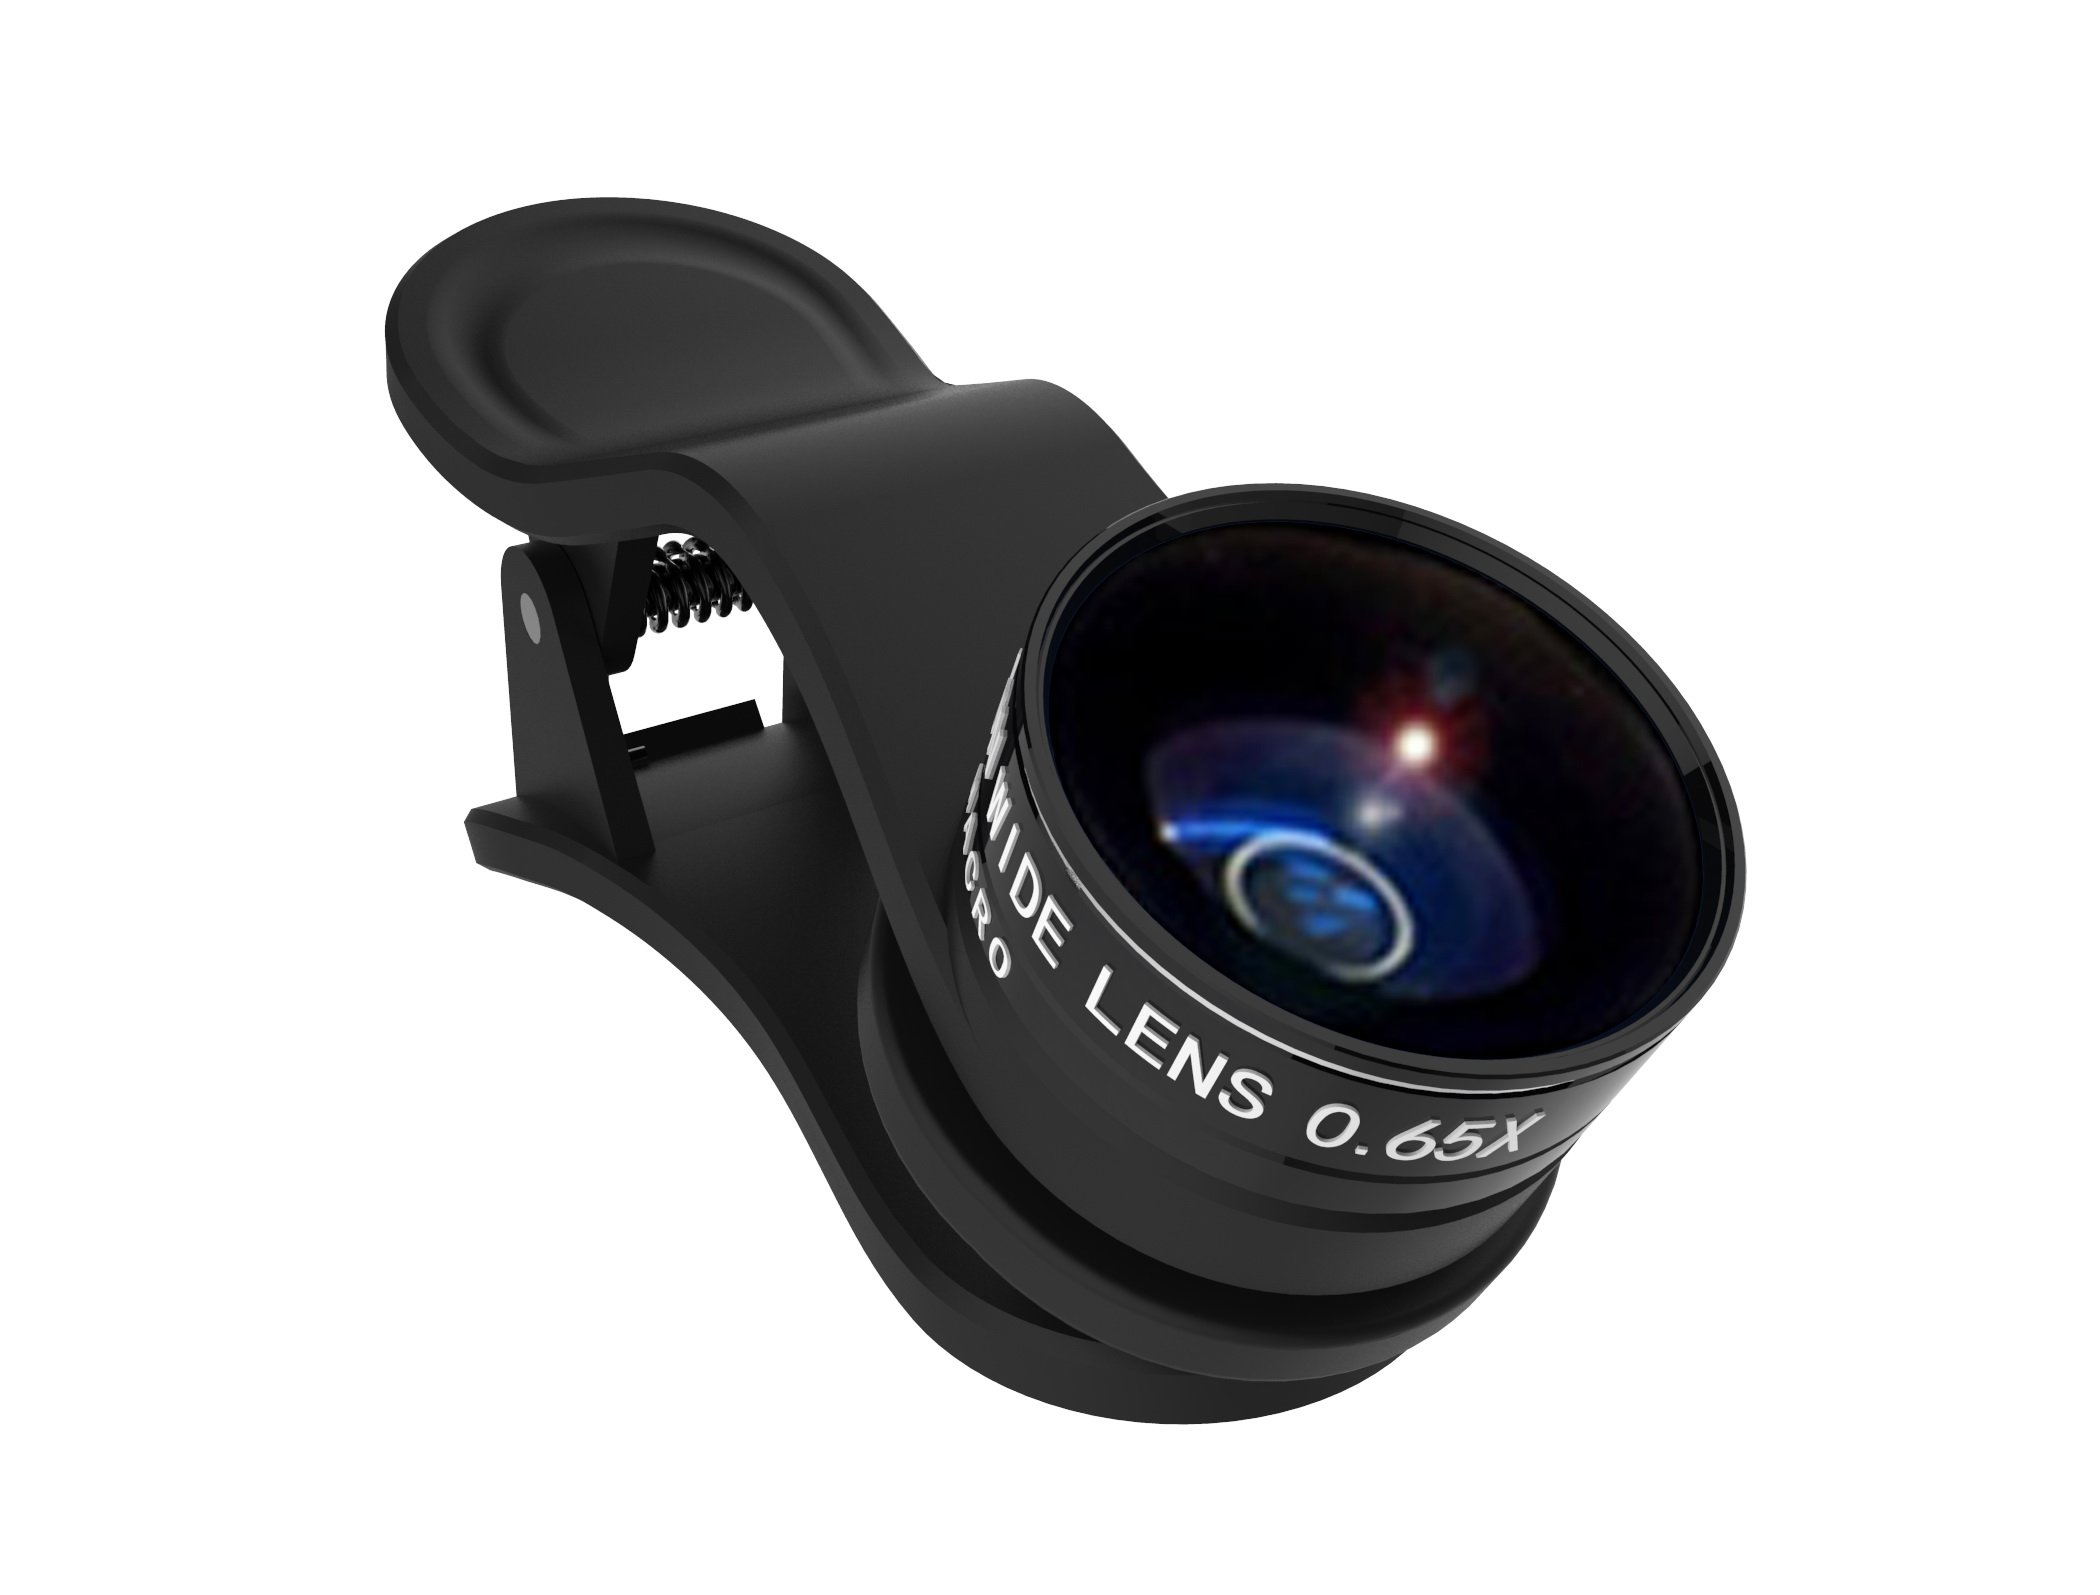 Kenko REAL PRO Multi-Coated Glass REAL PRO 0.6x Wide Angle + Macro Clip Lens for Mobile Devices, Black (KRP-065WM)